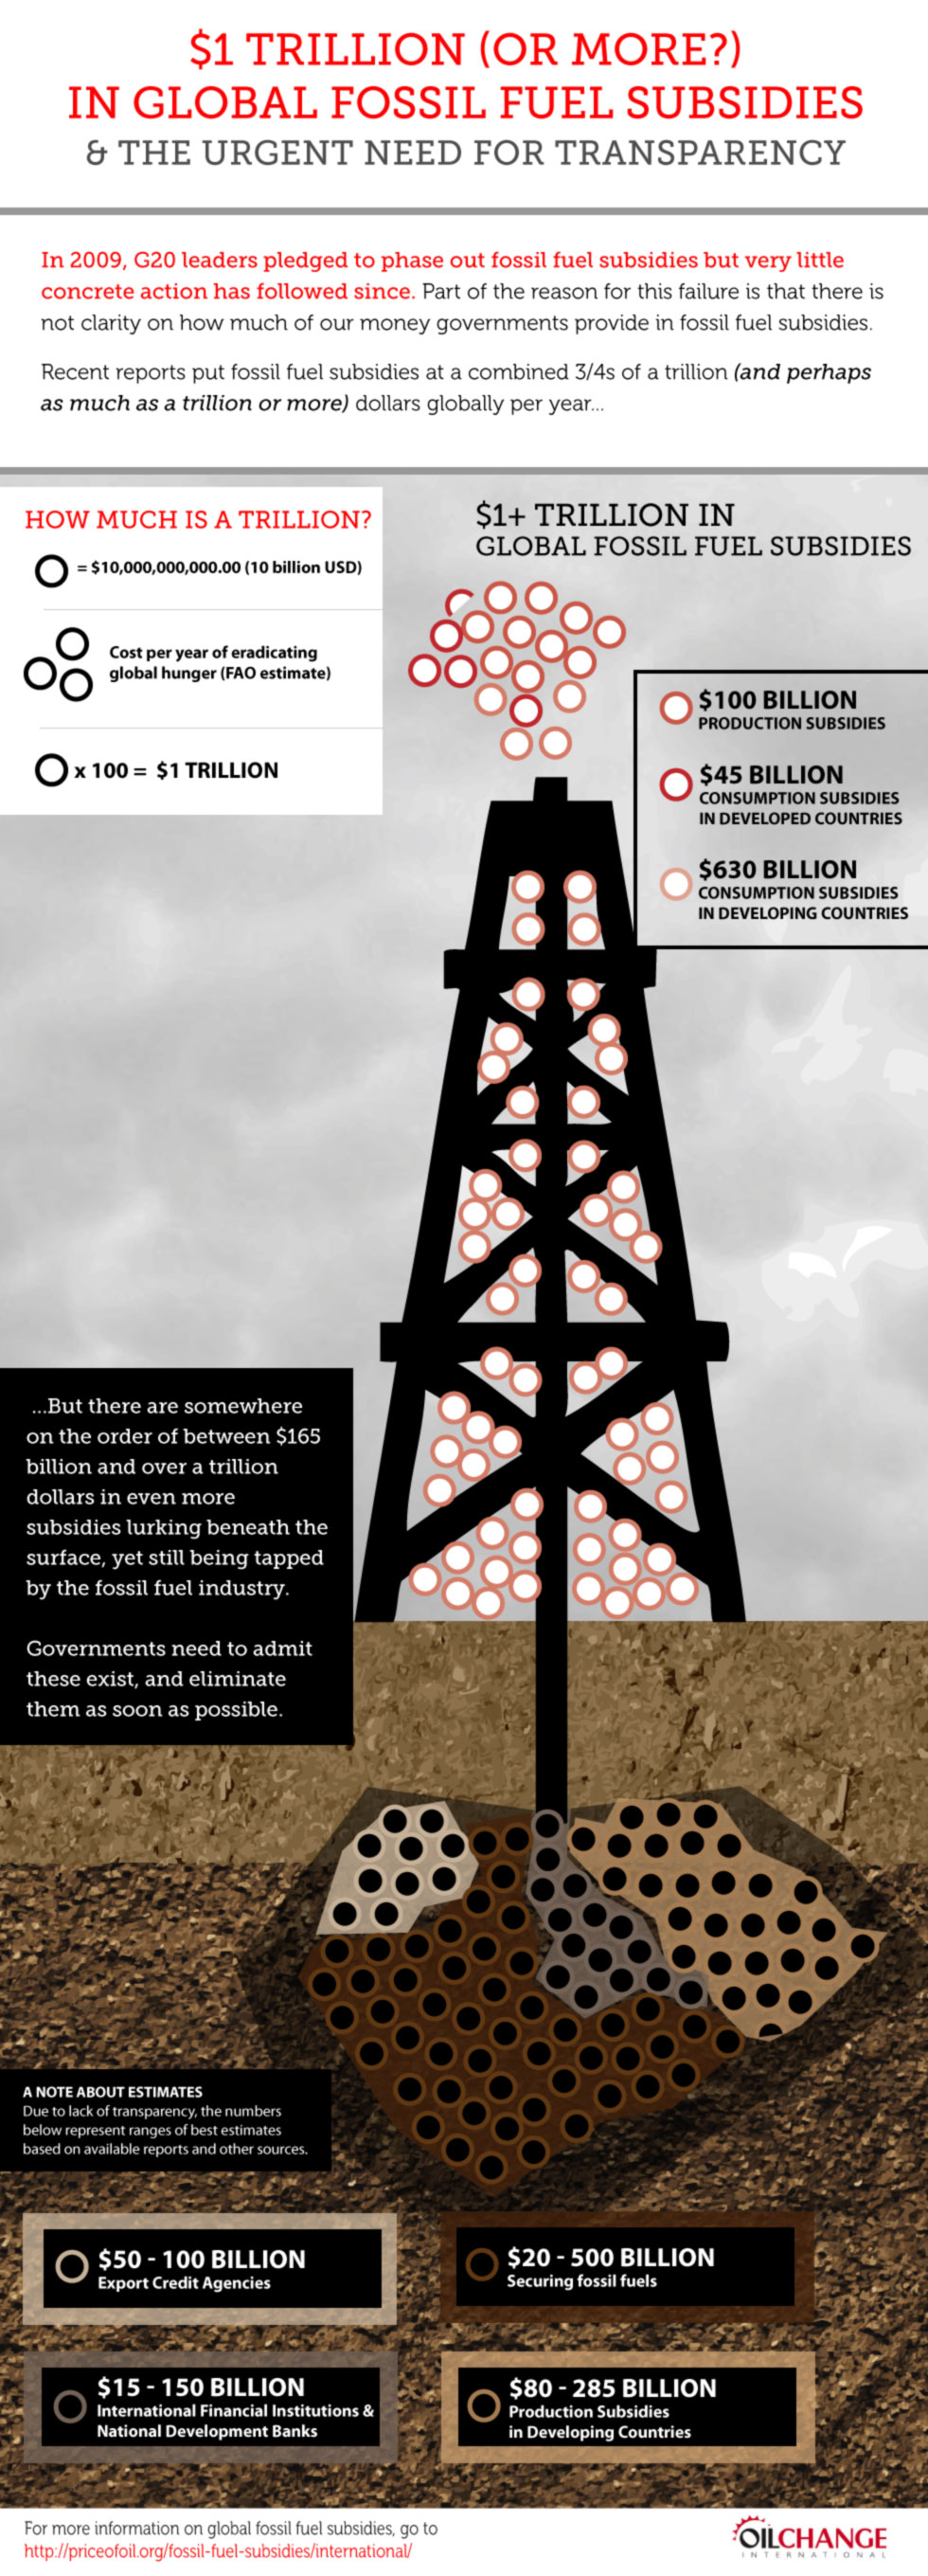 Global-Fossil-Fuel-Subsidies-infographic